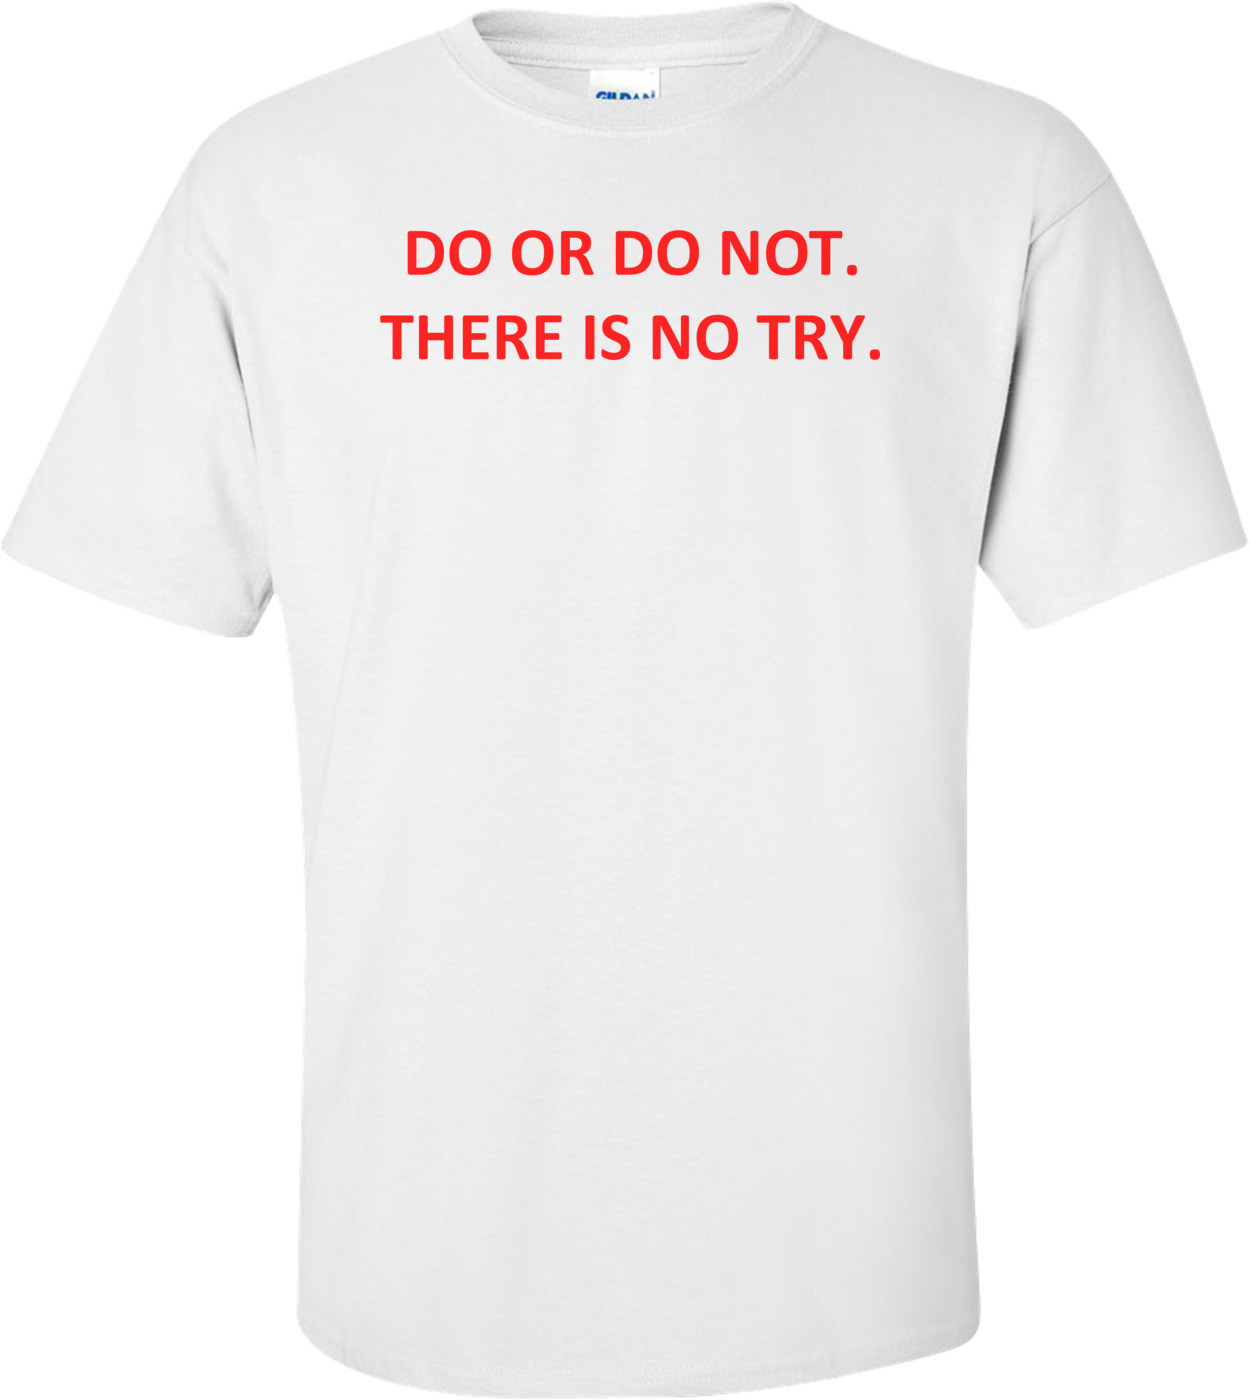 DO OR DO NOT. THERE IS NO TRY. Shirt